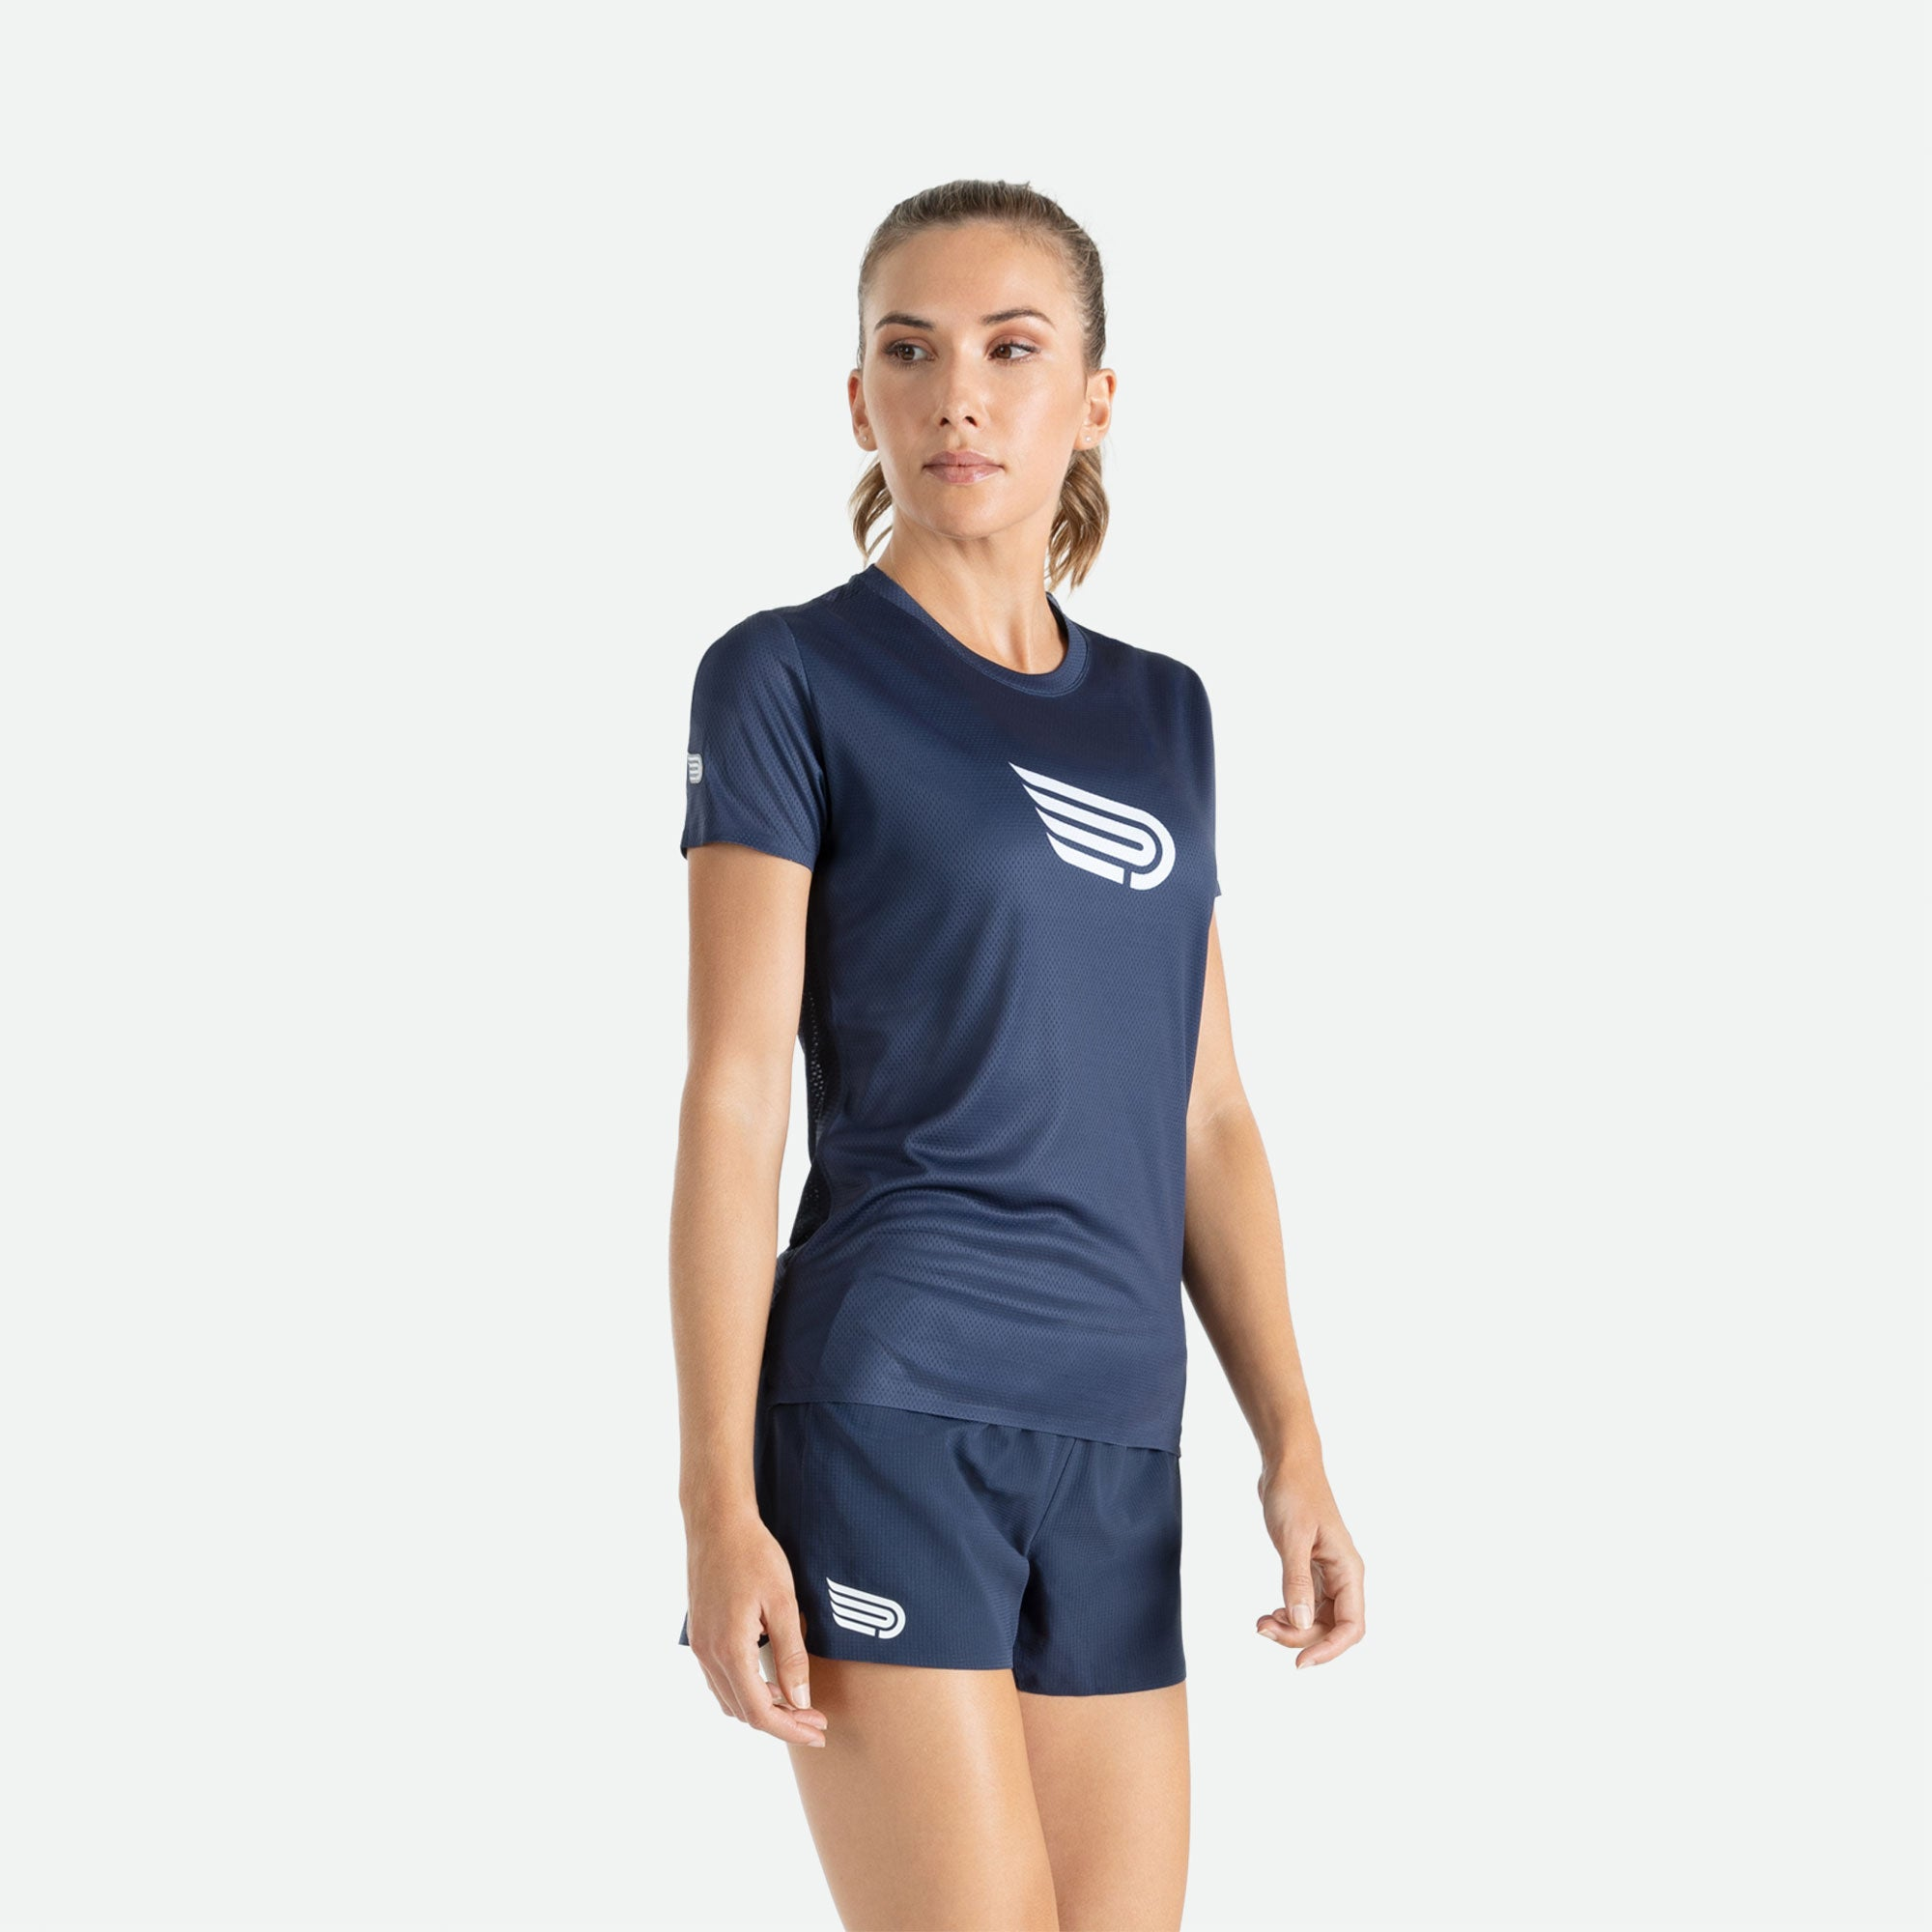 Our Pressio women's Ārahi navy/white short sleeve t-shirt features EcoTECH MF fabric which has dual filament recycled polyester yarns from Unifi for superior moisture control to keep you dry.